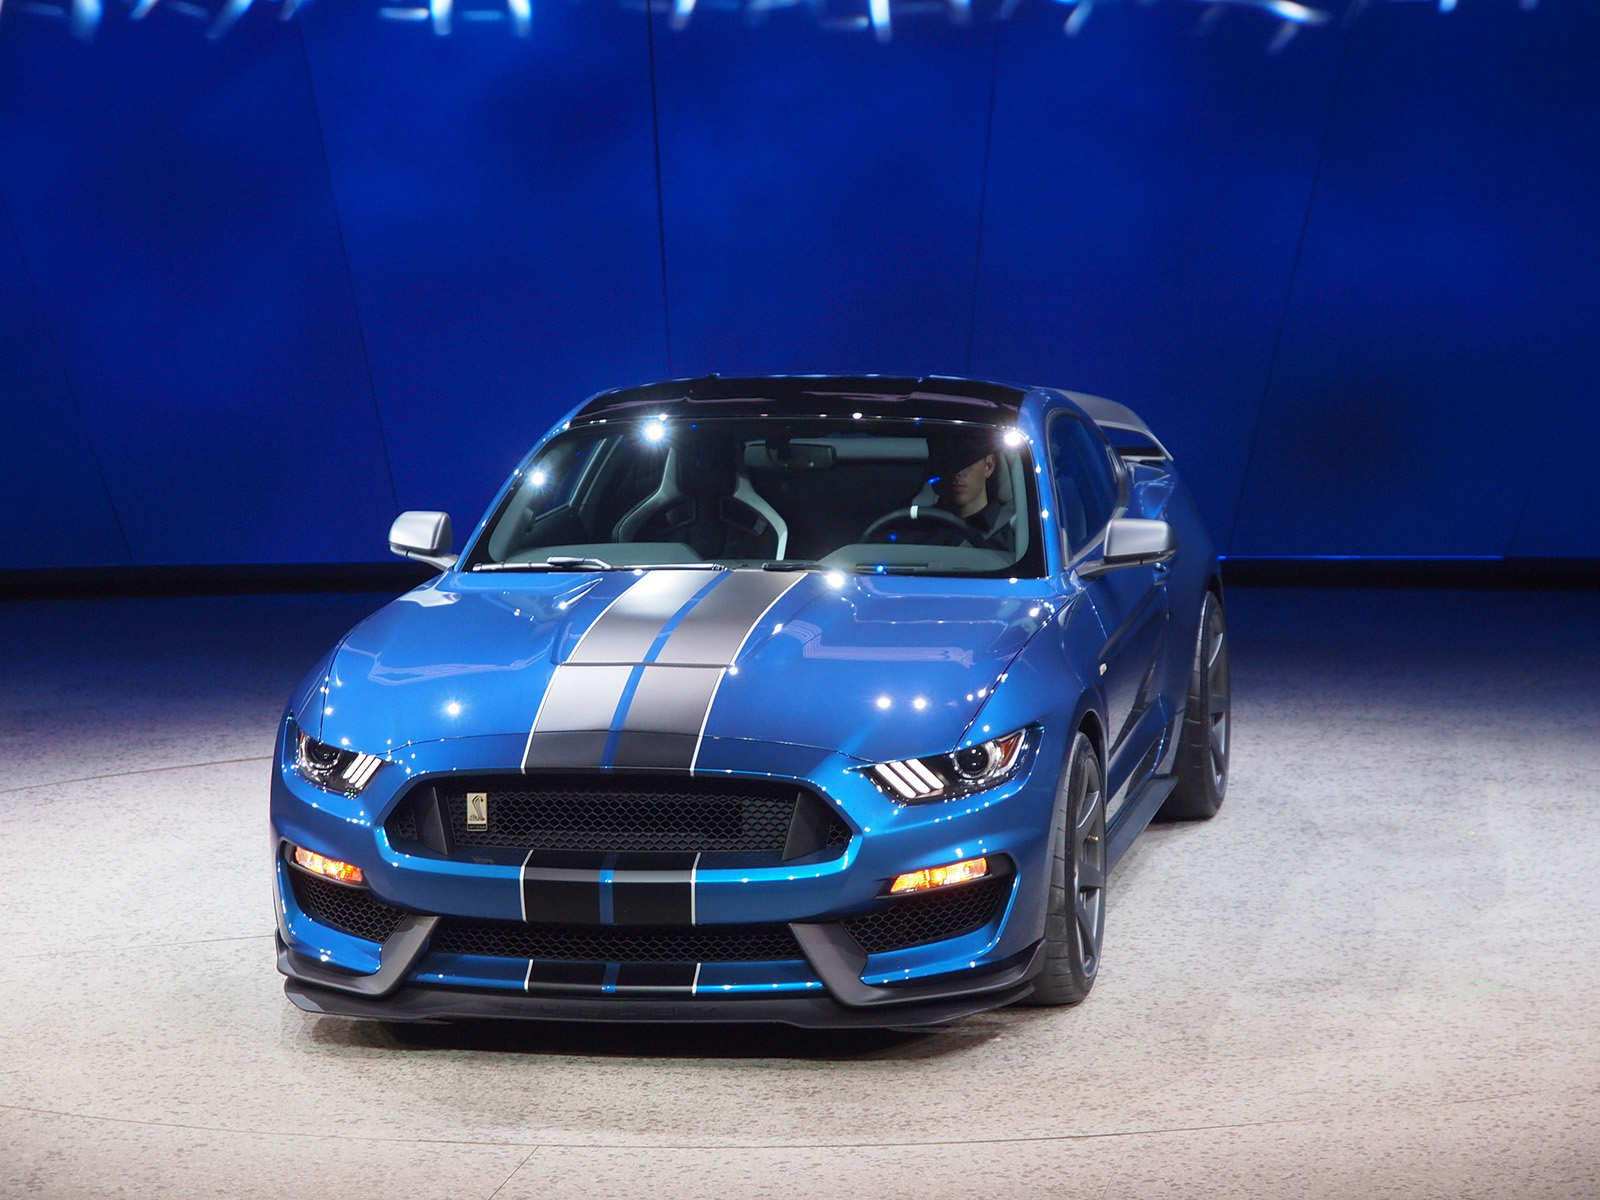 2018 Ford Mustang Shelby GT350R photo - 5